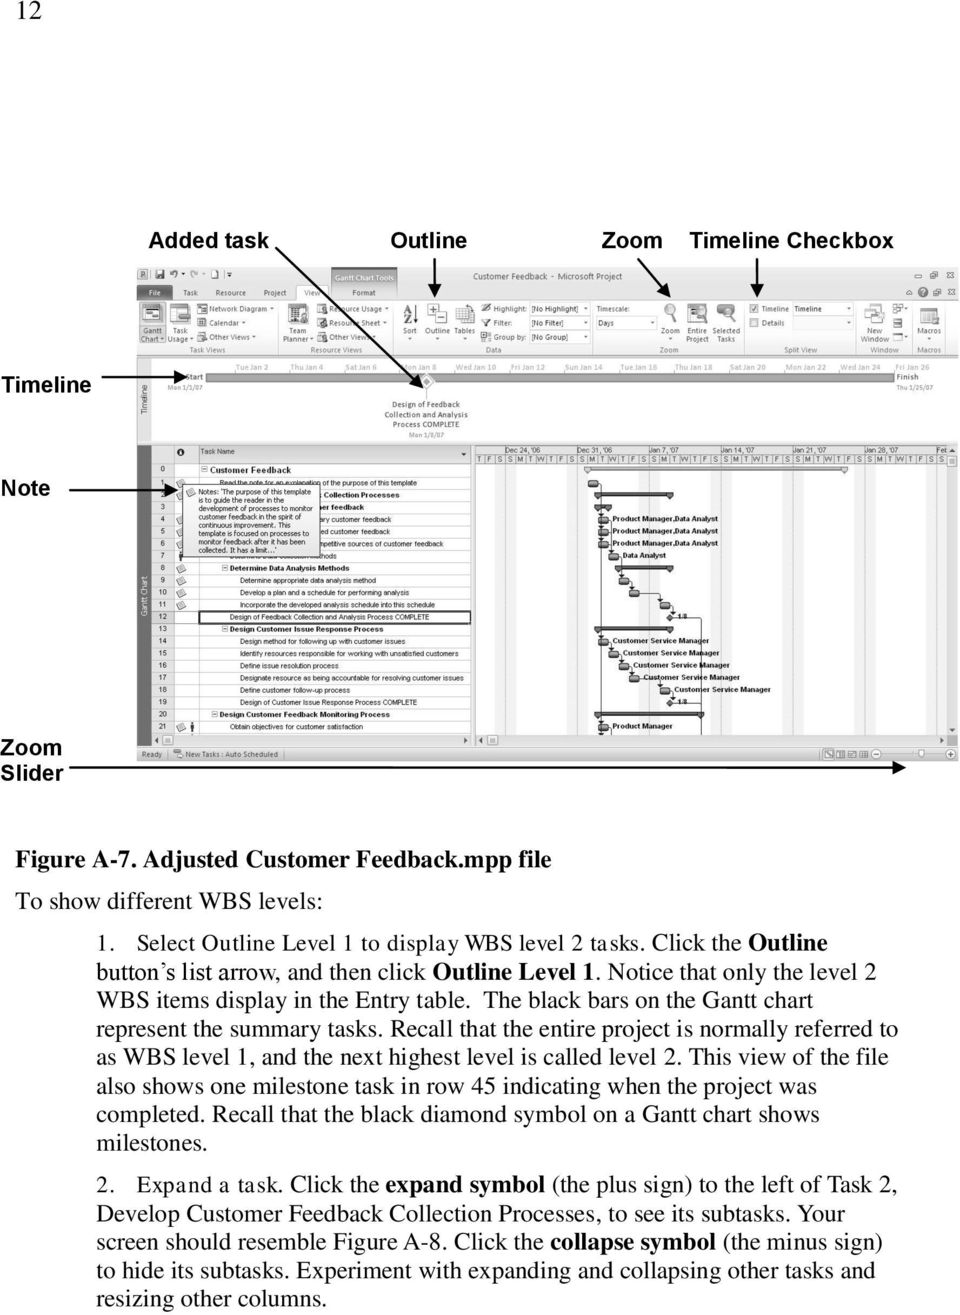 The black bars on the Gantt chart represent the summary tasks. Recall that the entire project is normally referred to as WBS level 1, and the next highest level is called level 2.